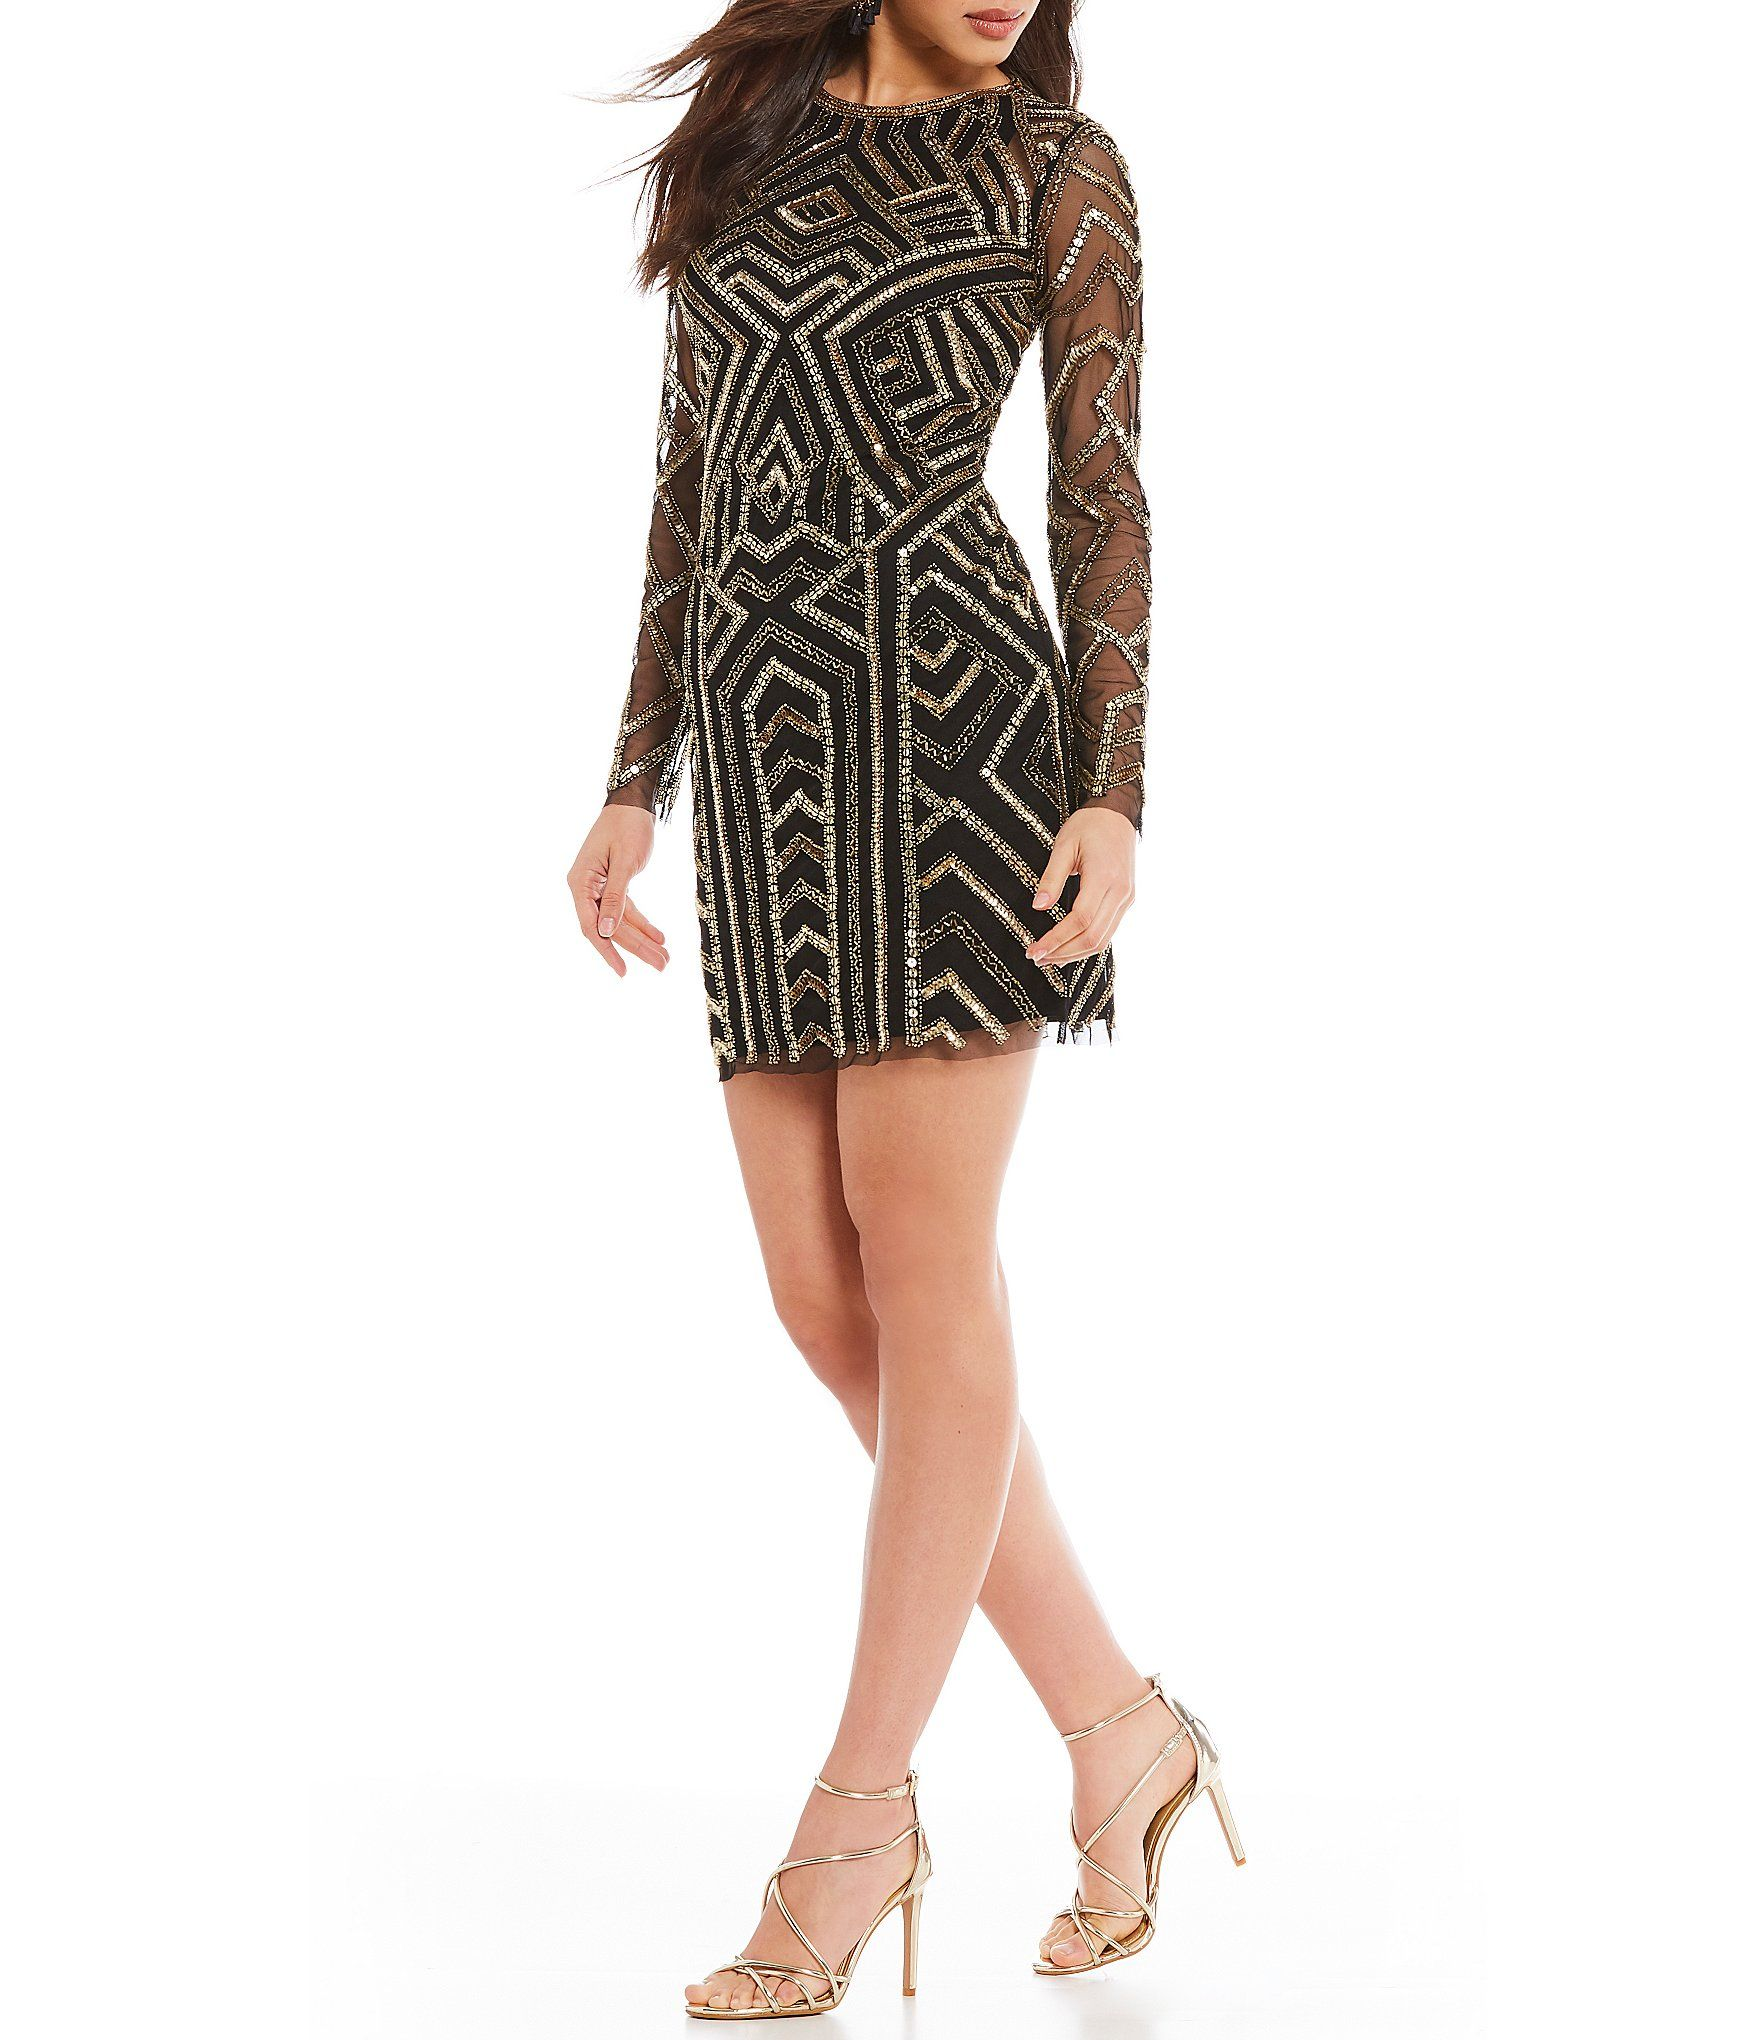 8ed5a13031c Shop for Gianni Bini Kim Geometric Sequin Dress at Dillards.com. Visit  Dillards.com to find clothing